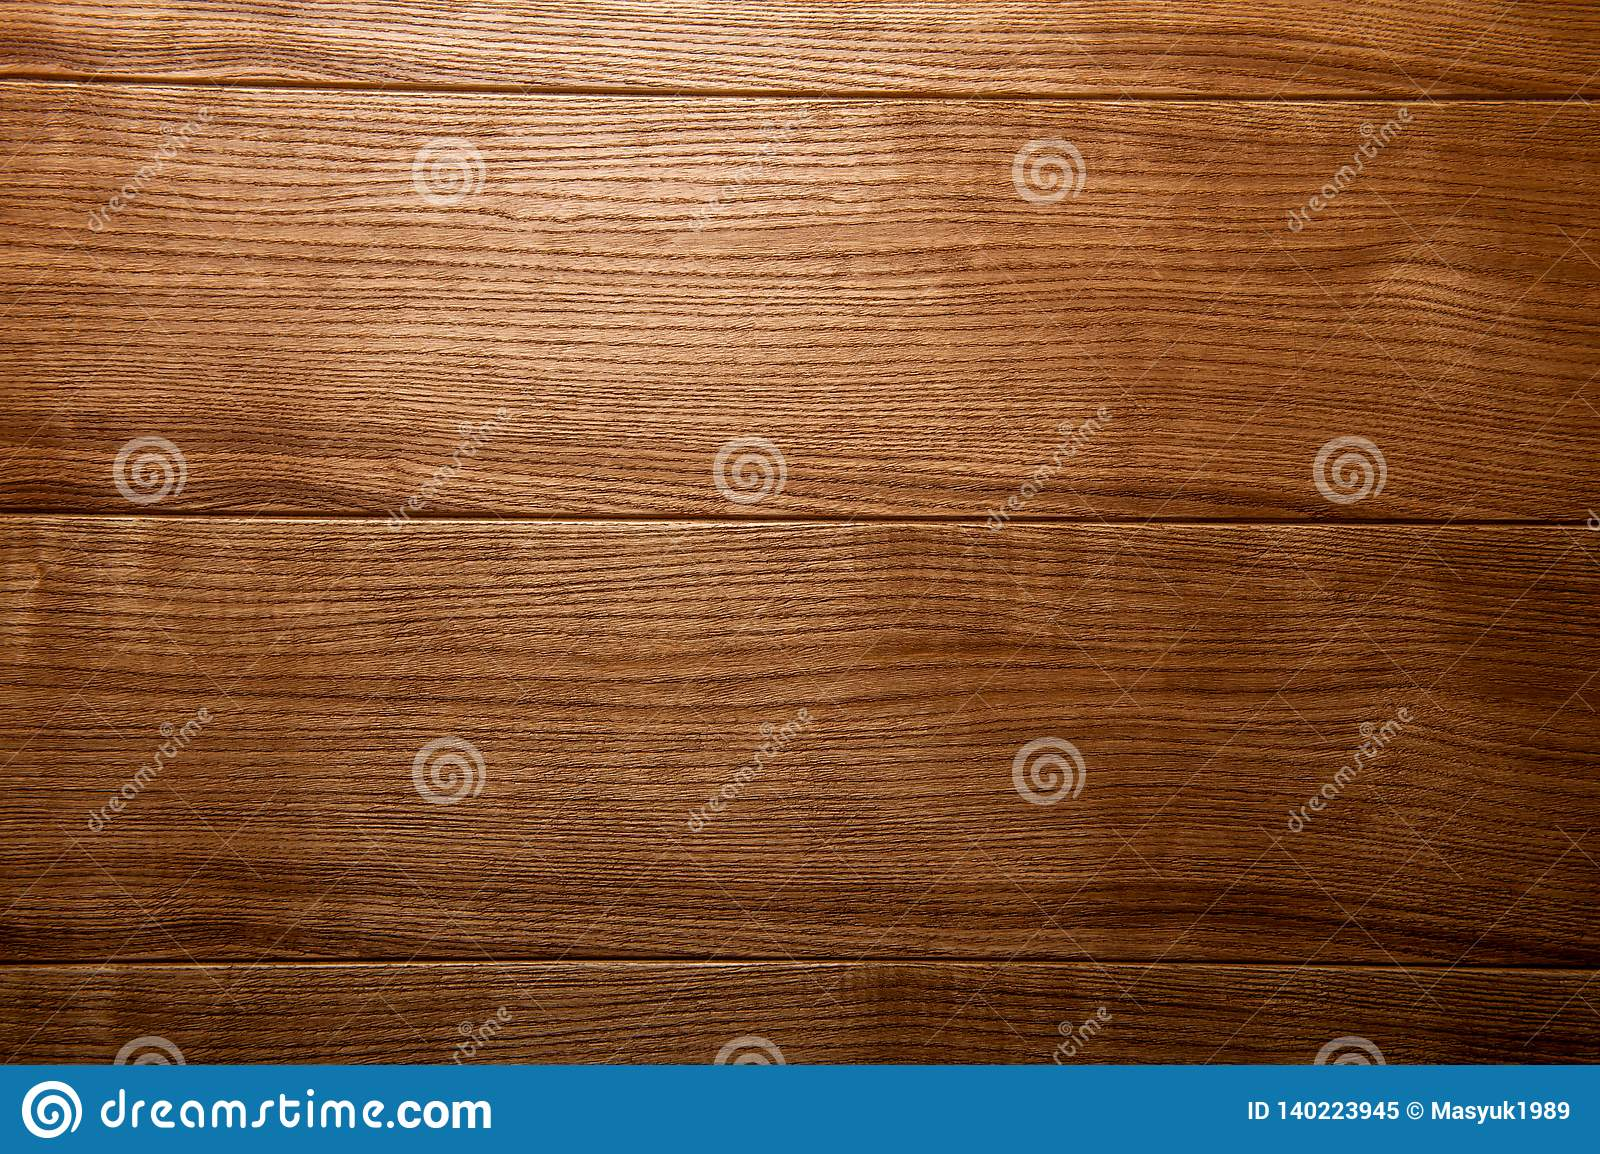 Wooden Boards Closeup Wooden Table Wooden Fence Stock Image